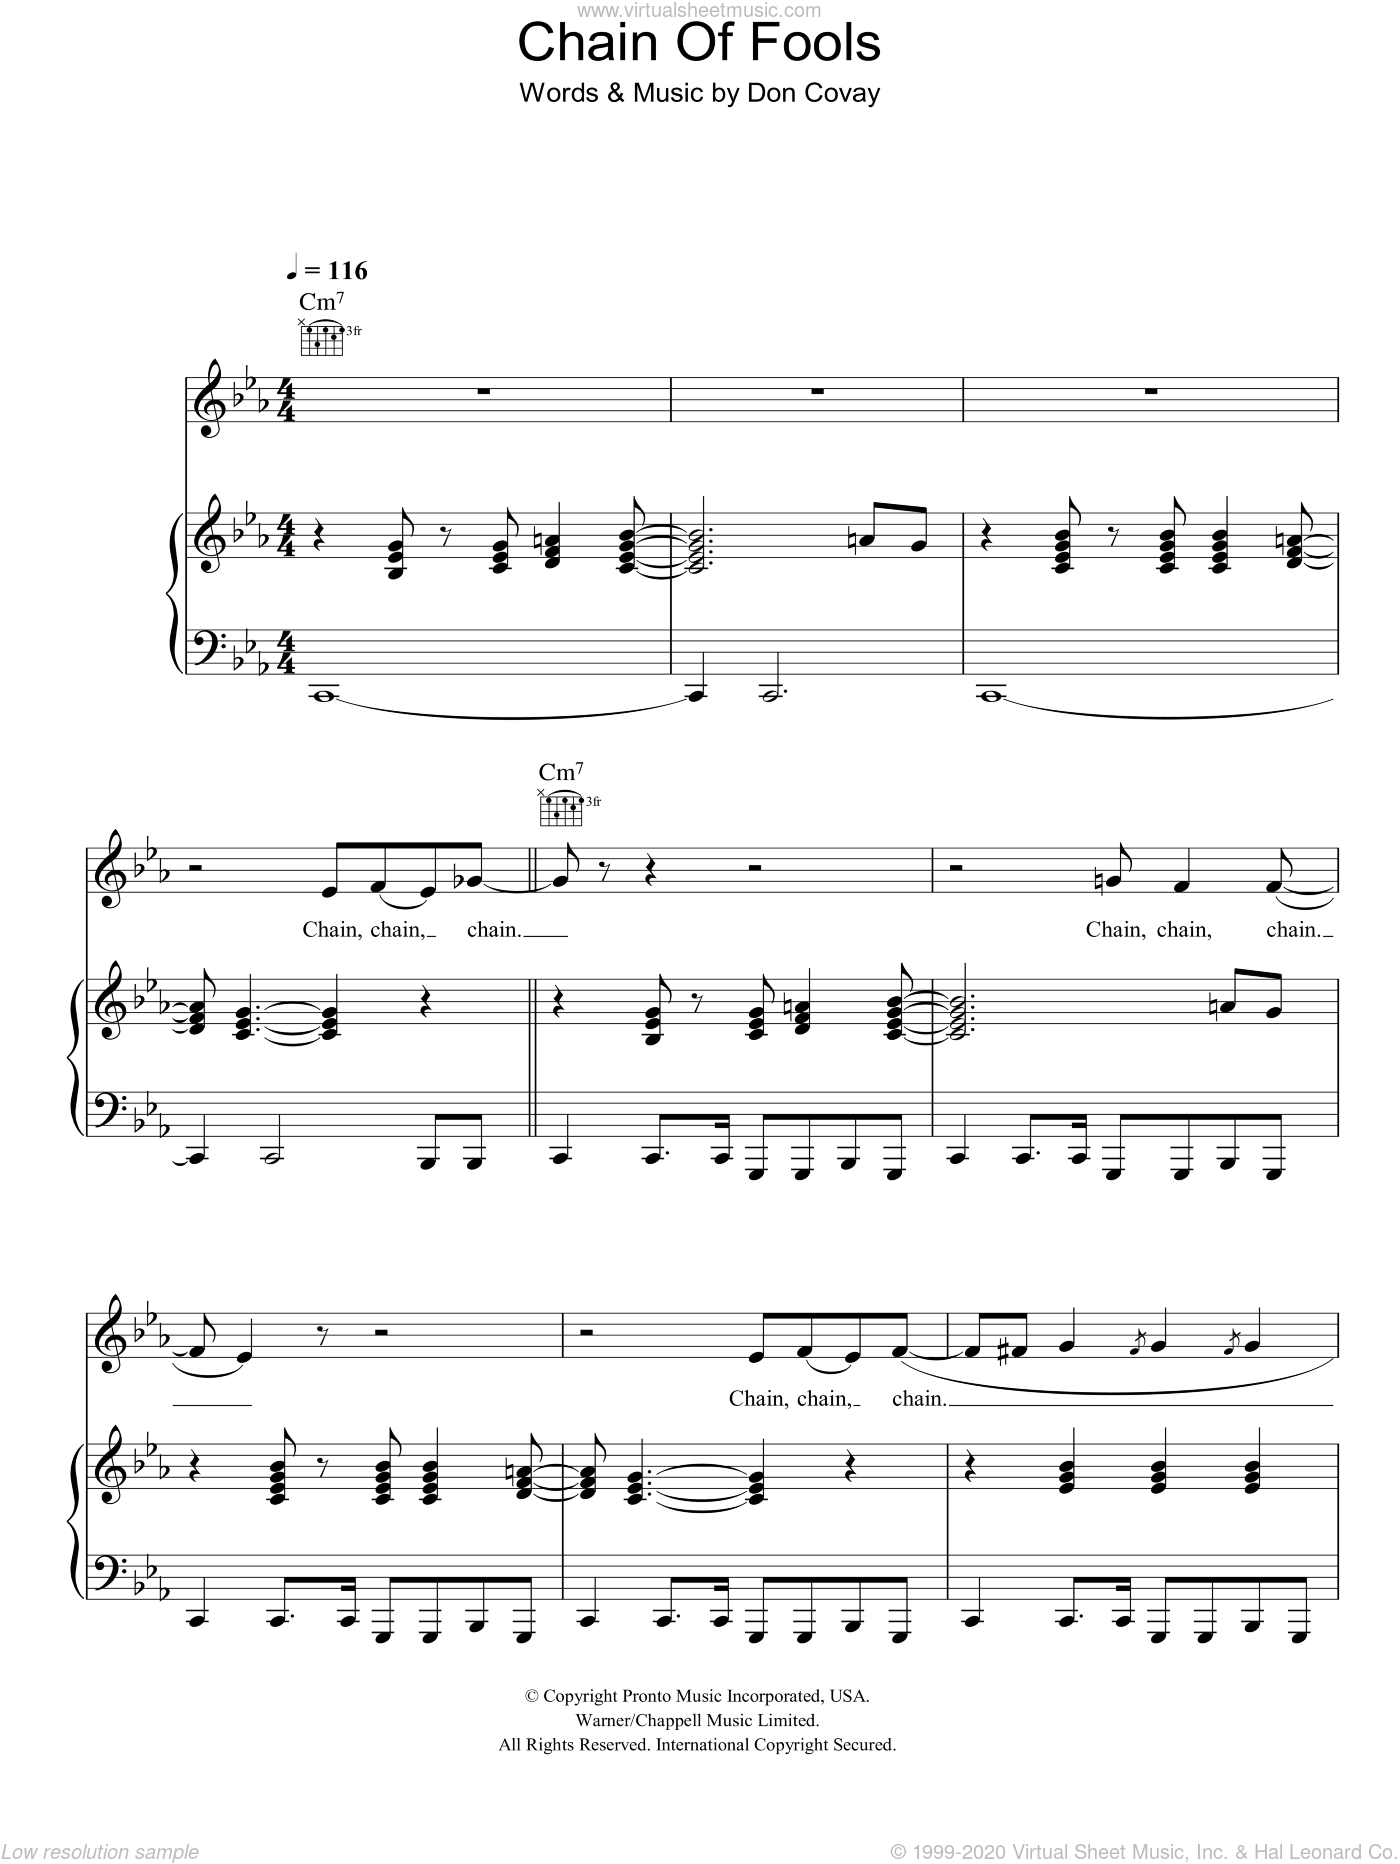 Chain Of Fools sheet music for voice, piano or guitar by Don Covay